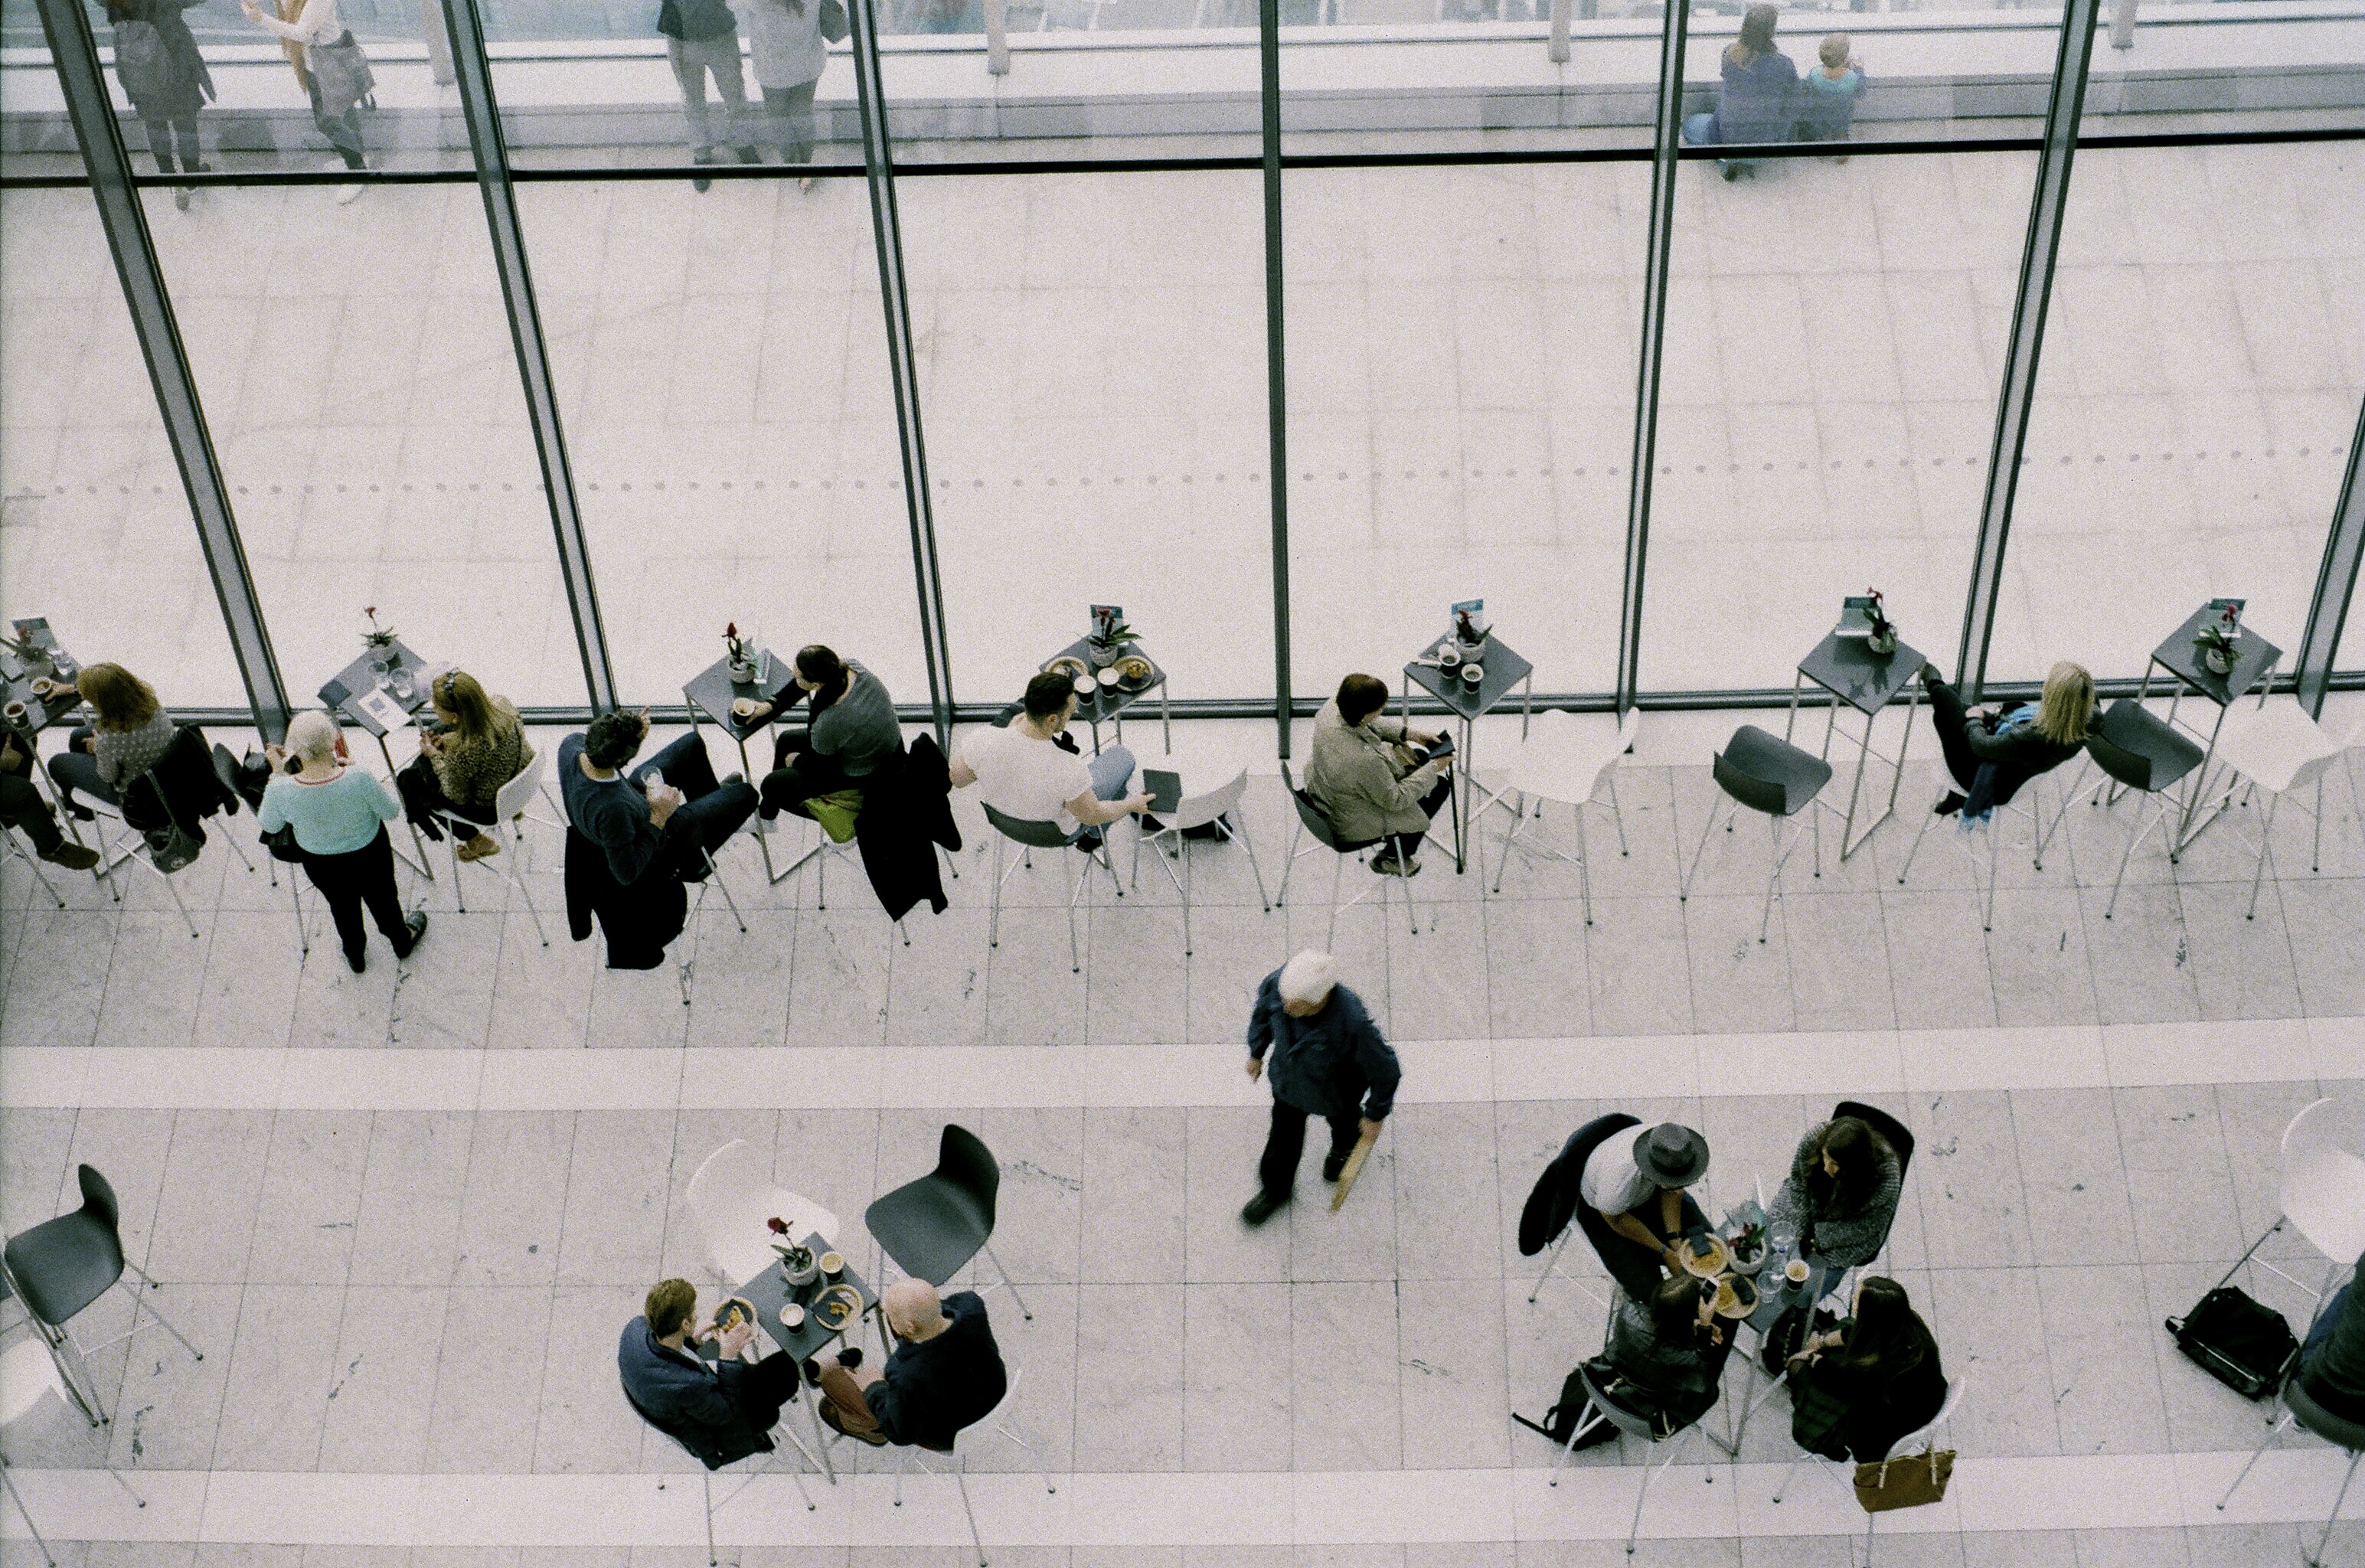 An overhead shot of people eating and talking at tables in a public space